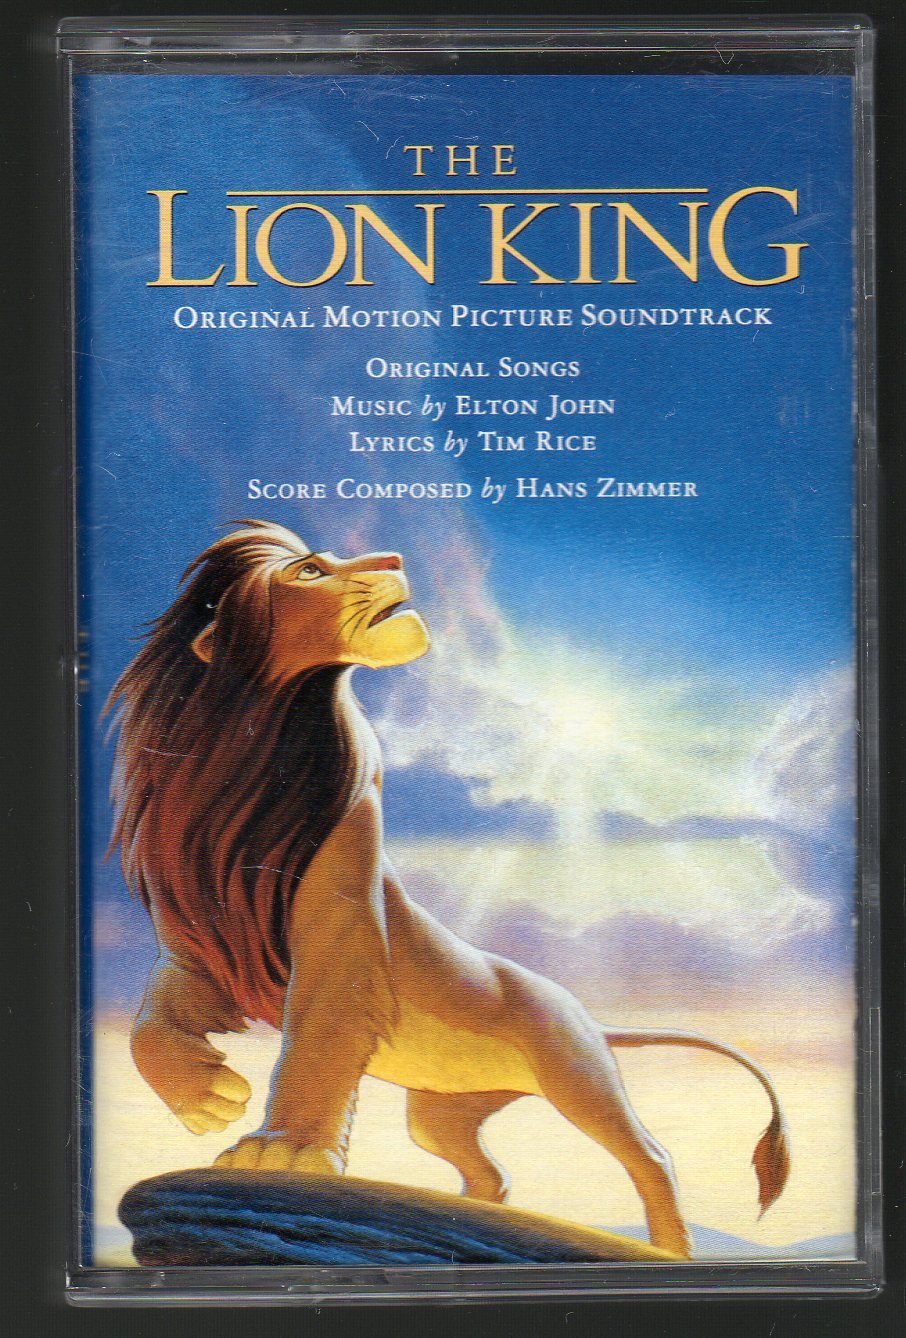 the lion king original score soundtrack